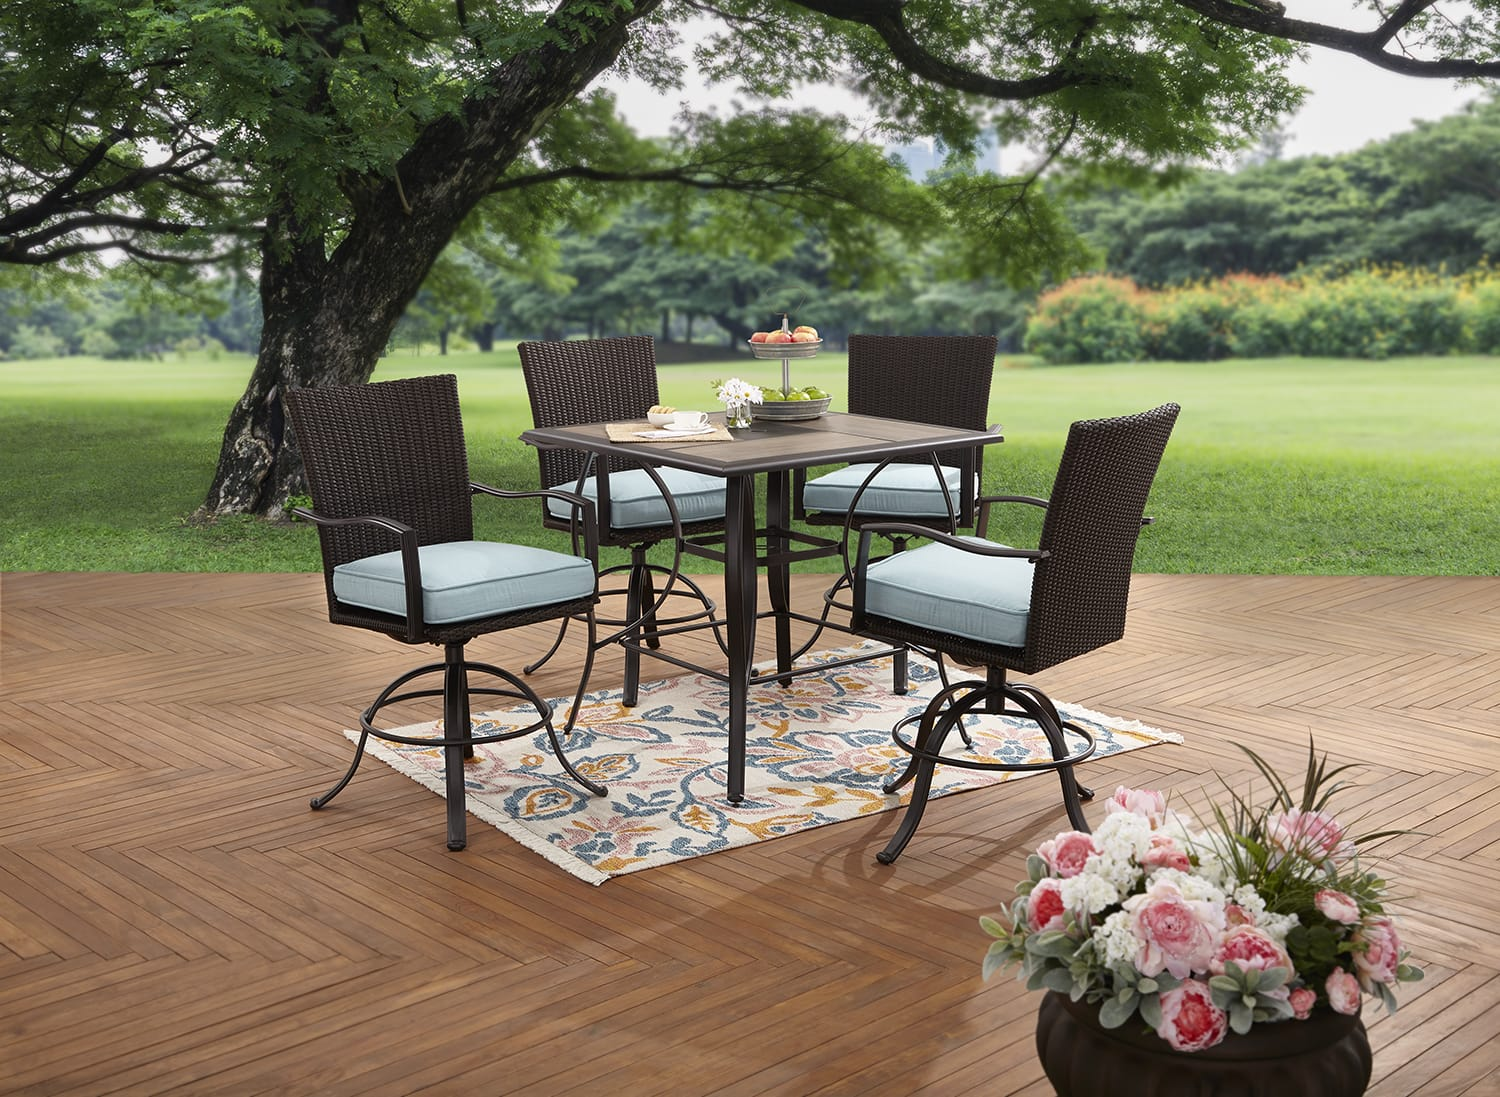 Better Homes And Gardens Piper Ridge 5 Piece Outdoor High Dining Set YMMV 124